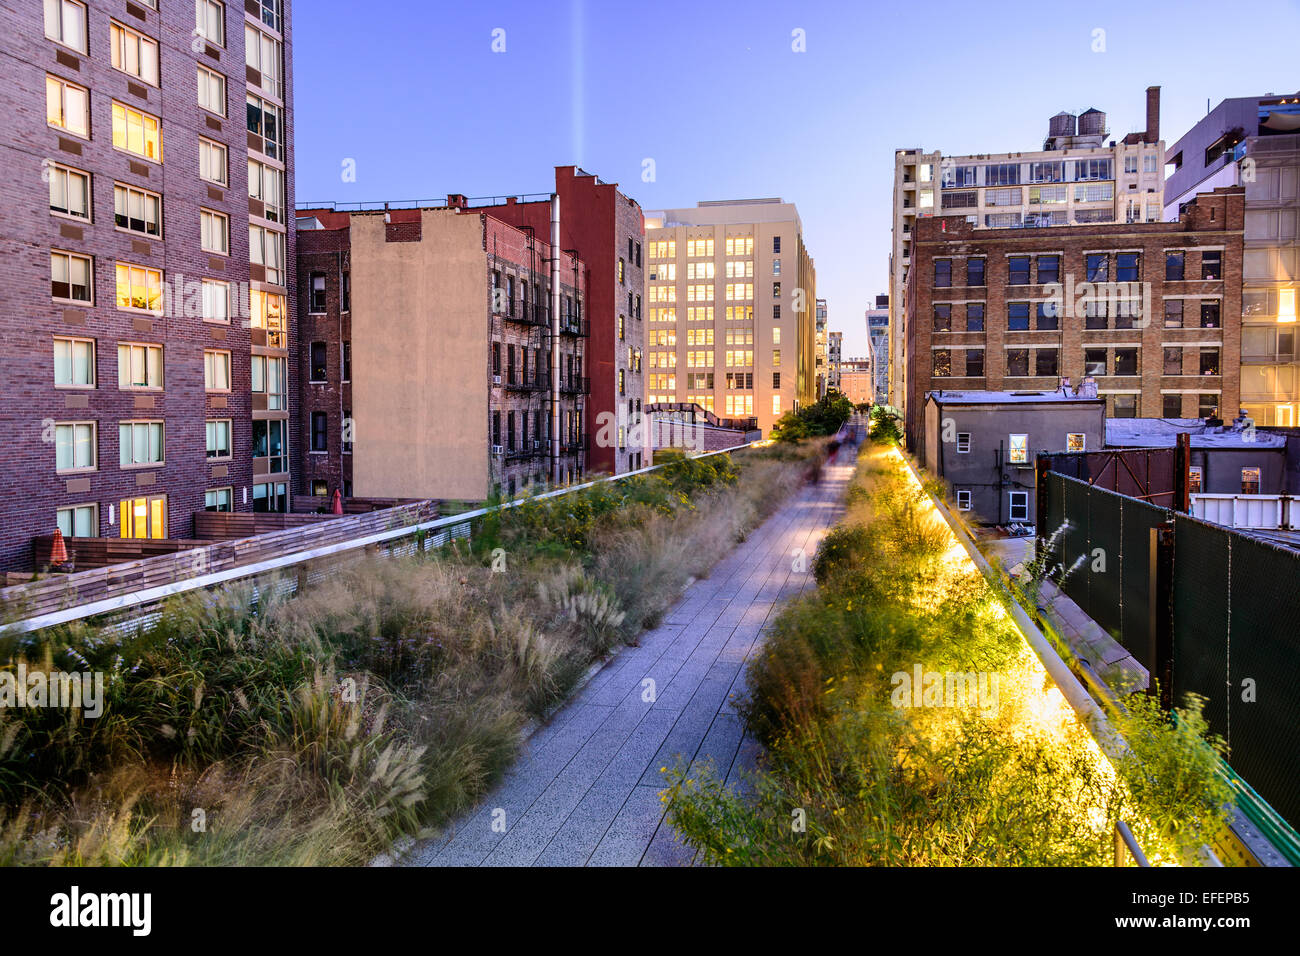 New York City, USA on the High Line Park. Stock Photo